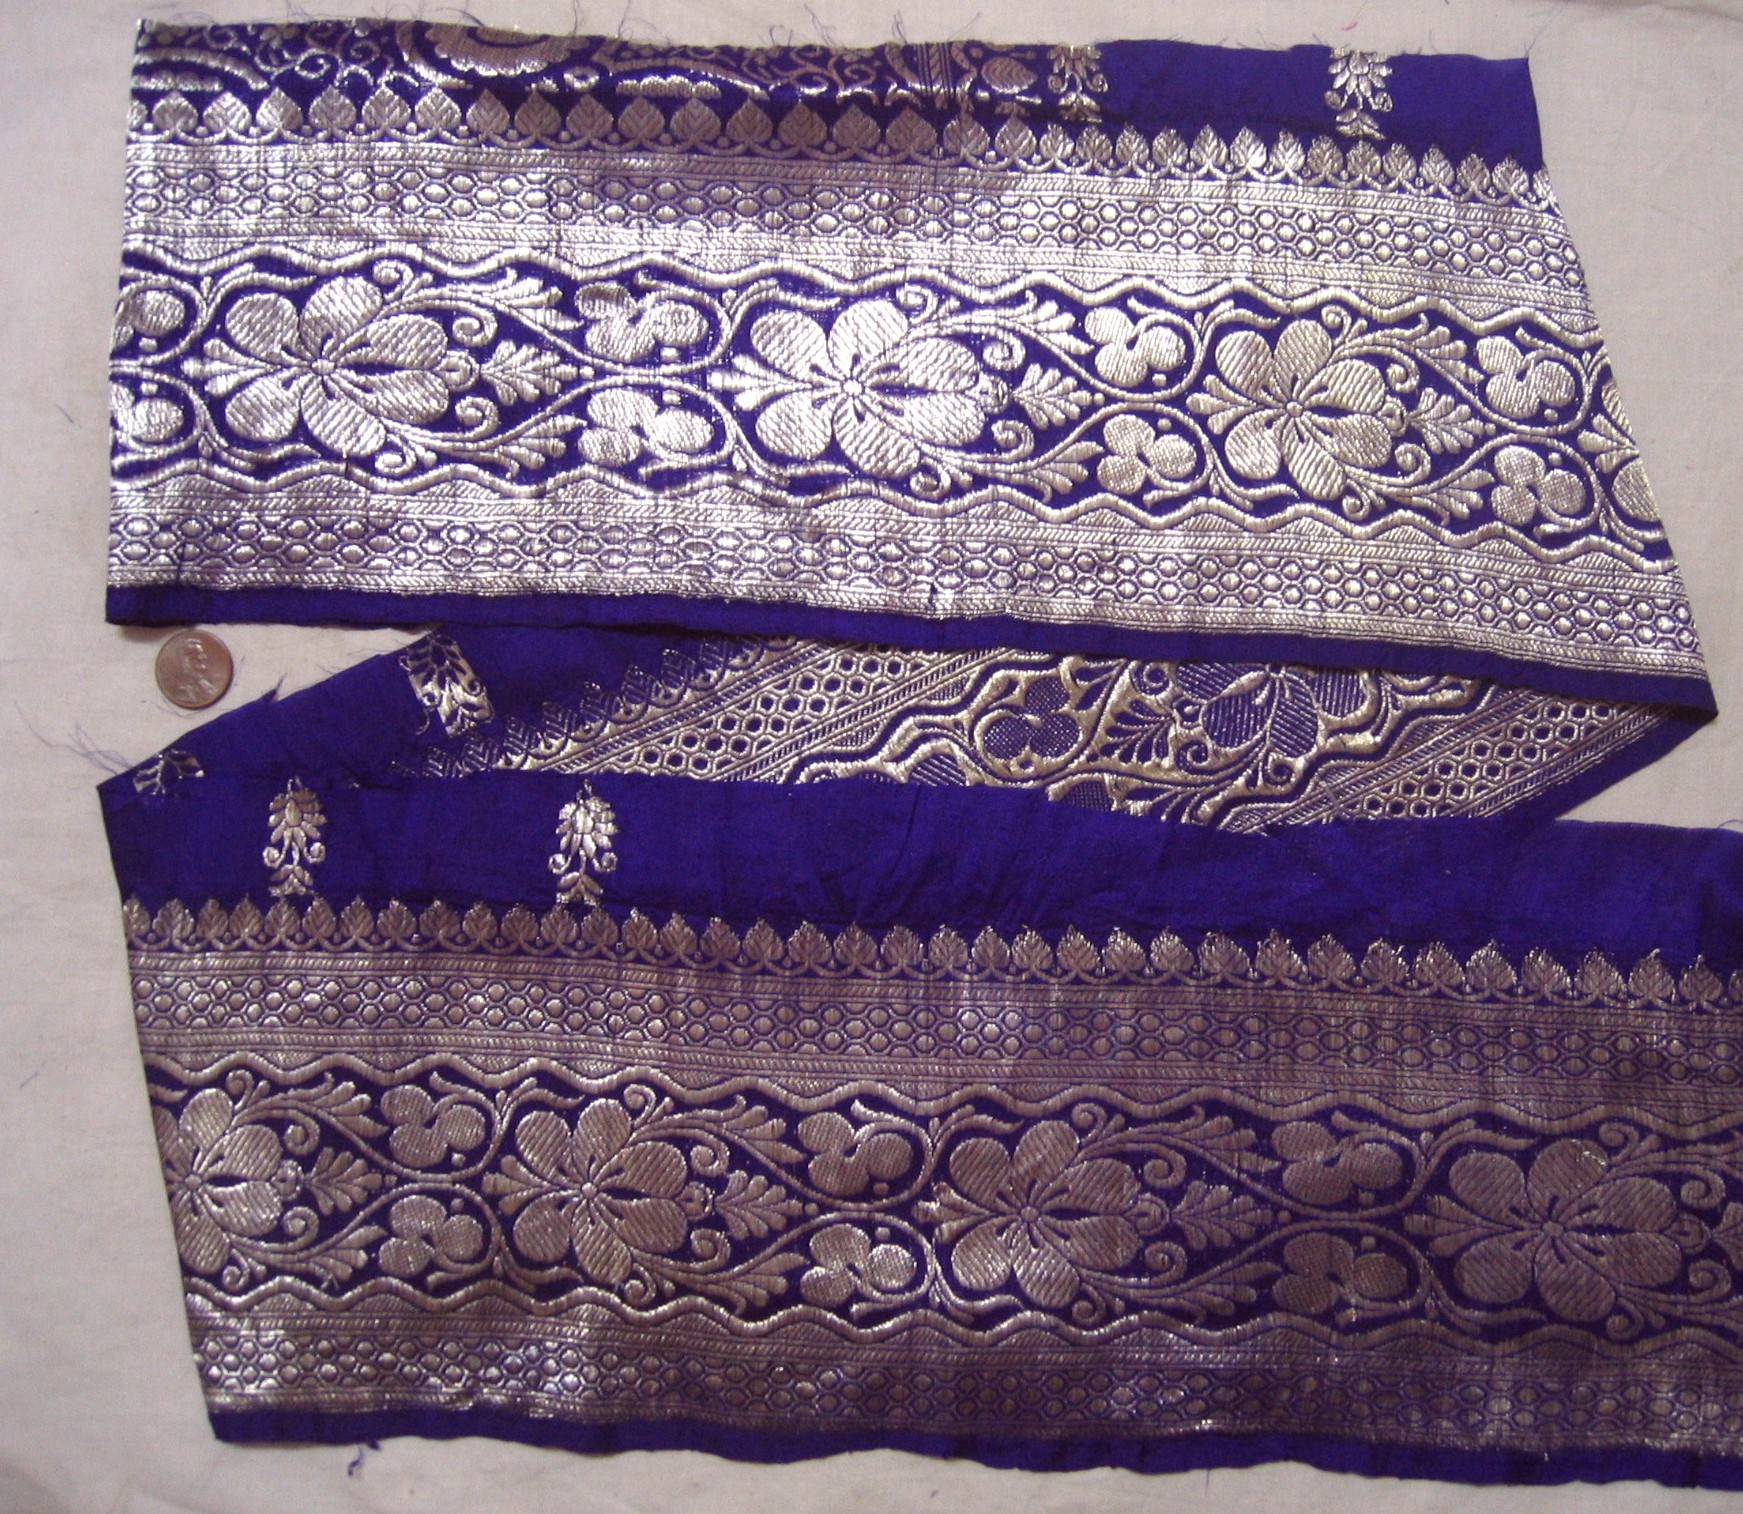 Vintage Antique Border Sari Trim Lace Ribbon BANARASI S